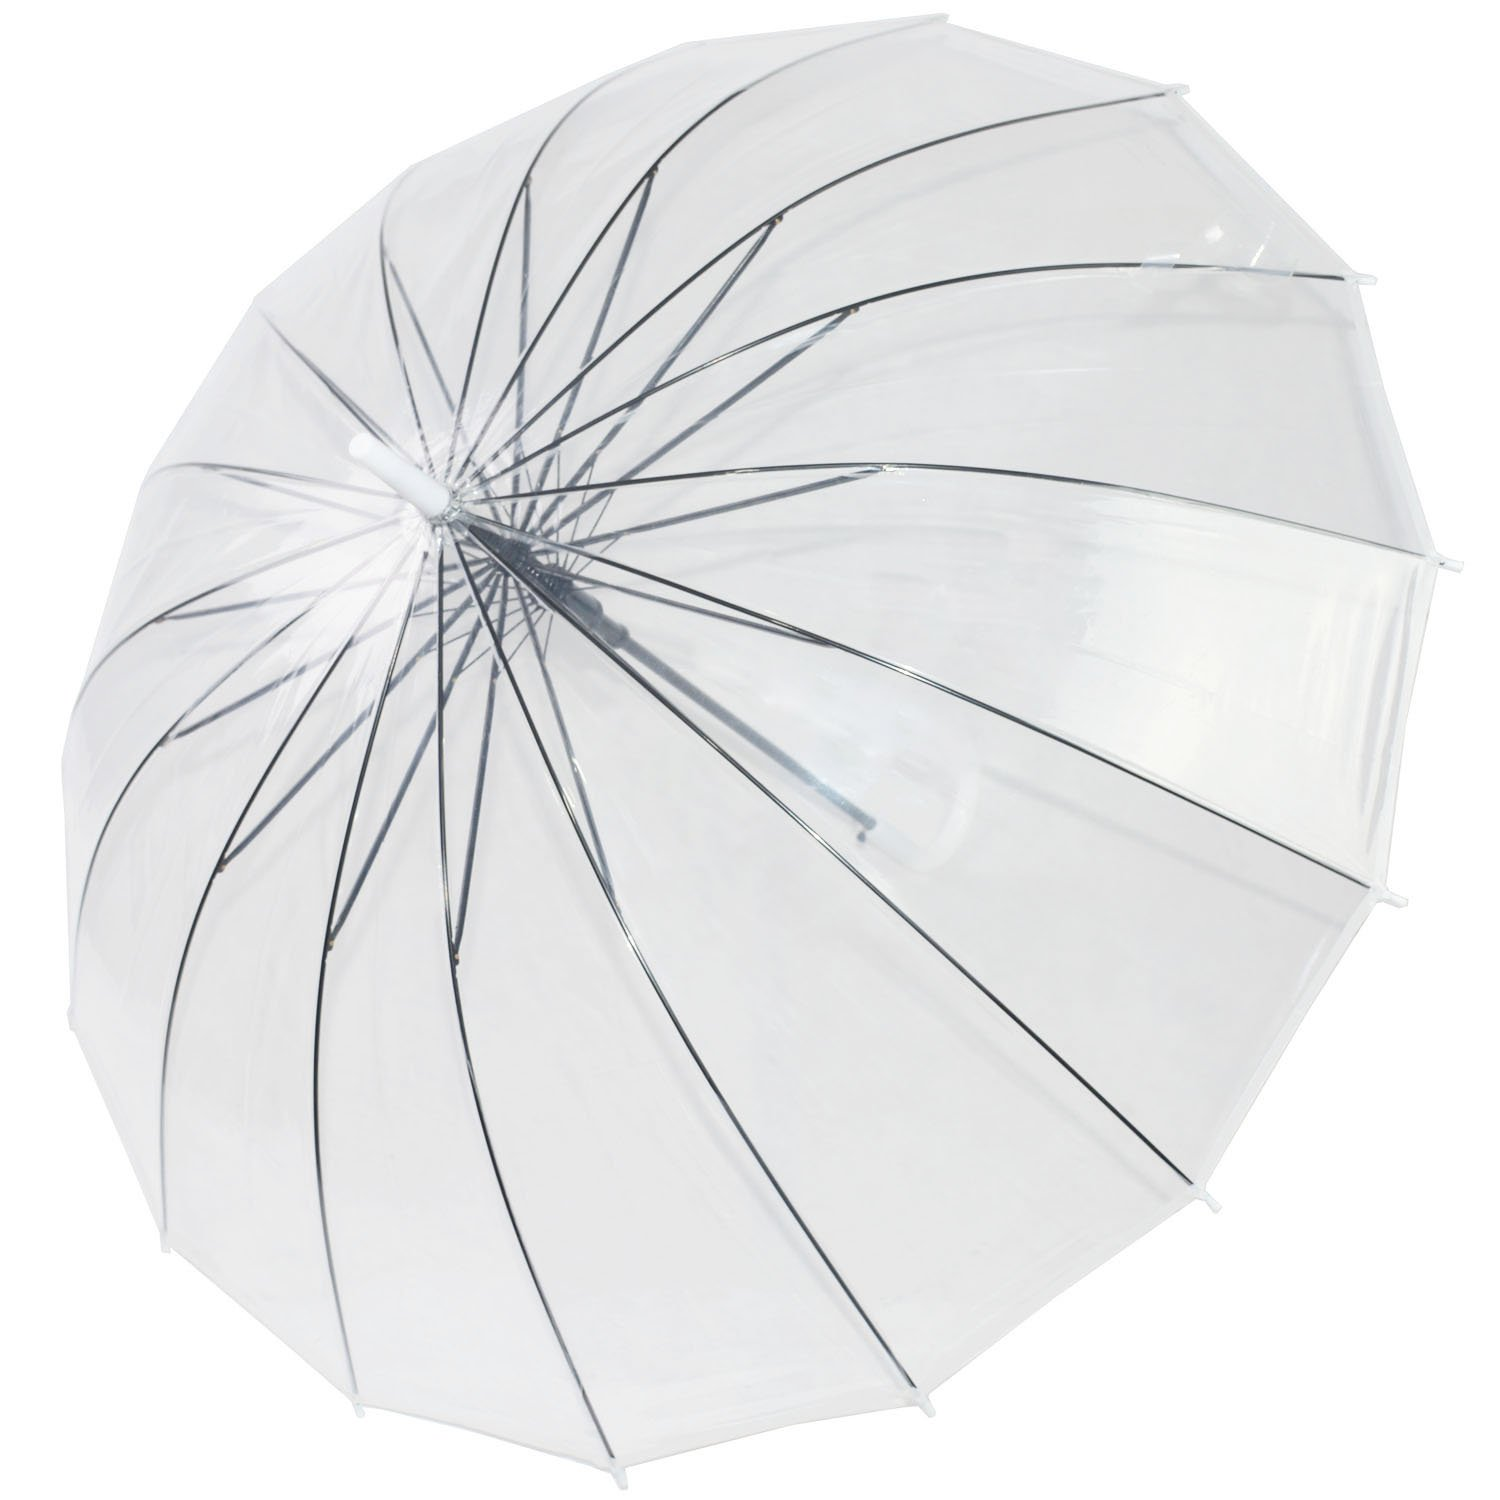 Kung Fu Smith Large Bubble Dome Auto Open Rain Clear Stick Umbrella